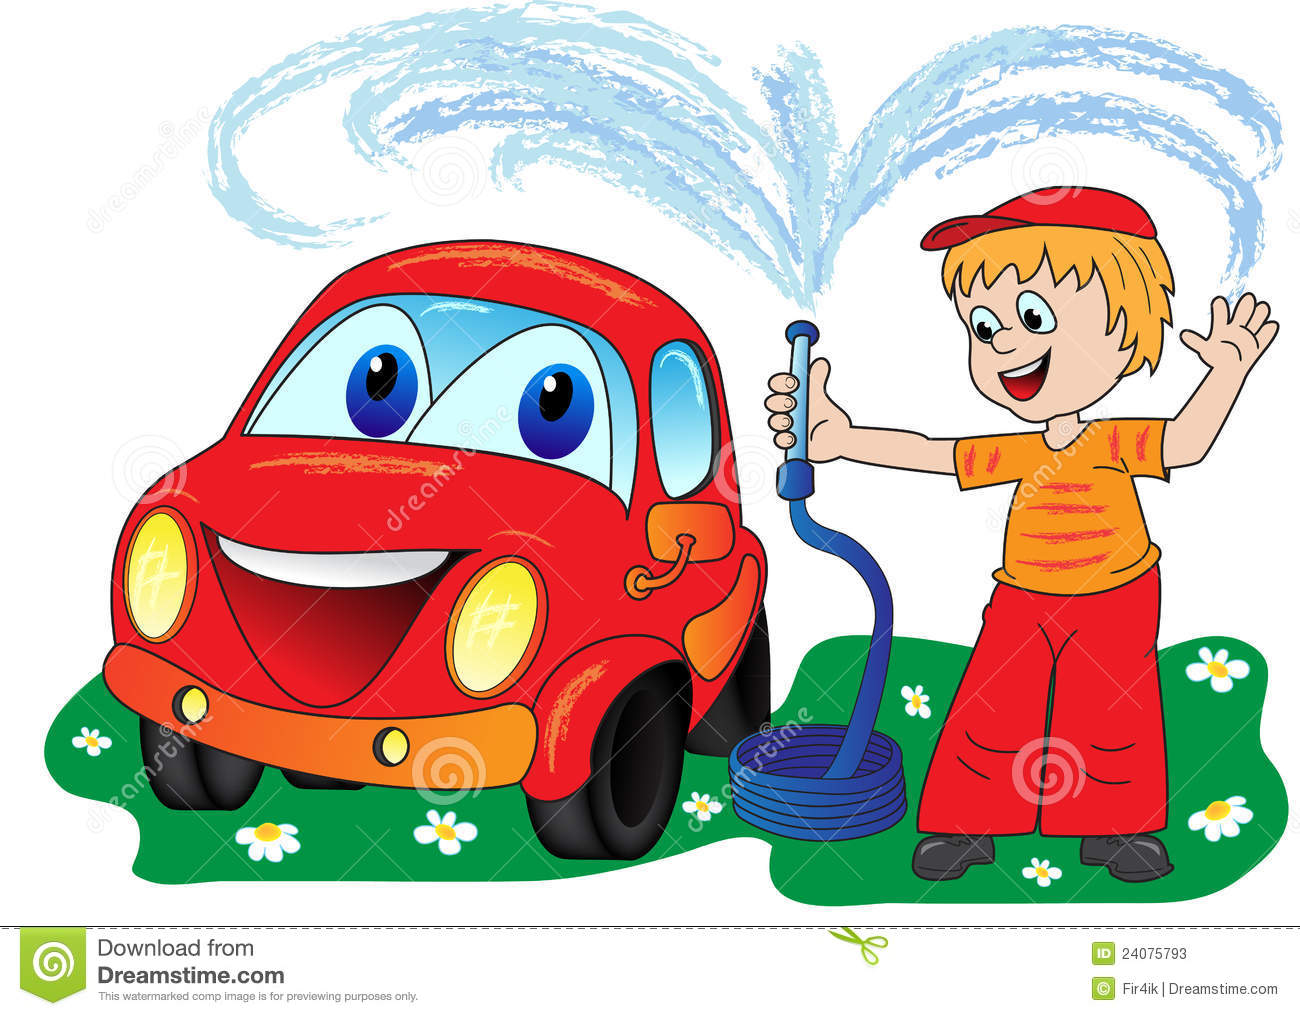 man in a bright dress washes smiling automobile from a hose.